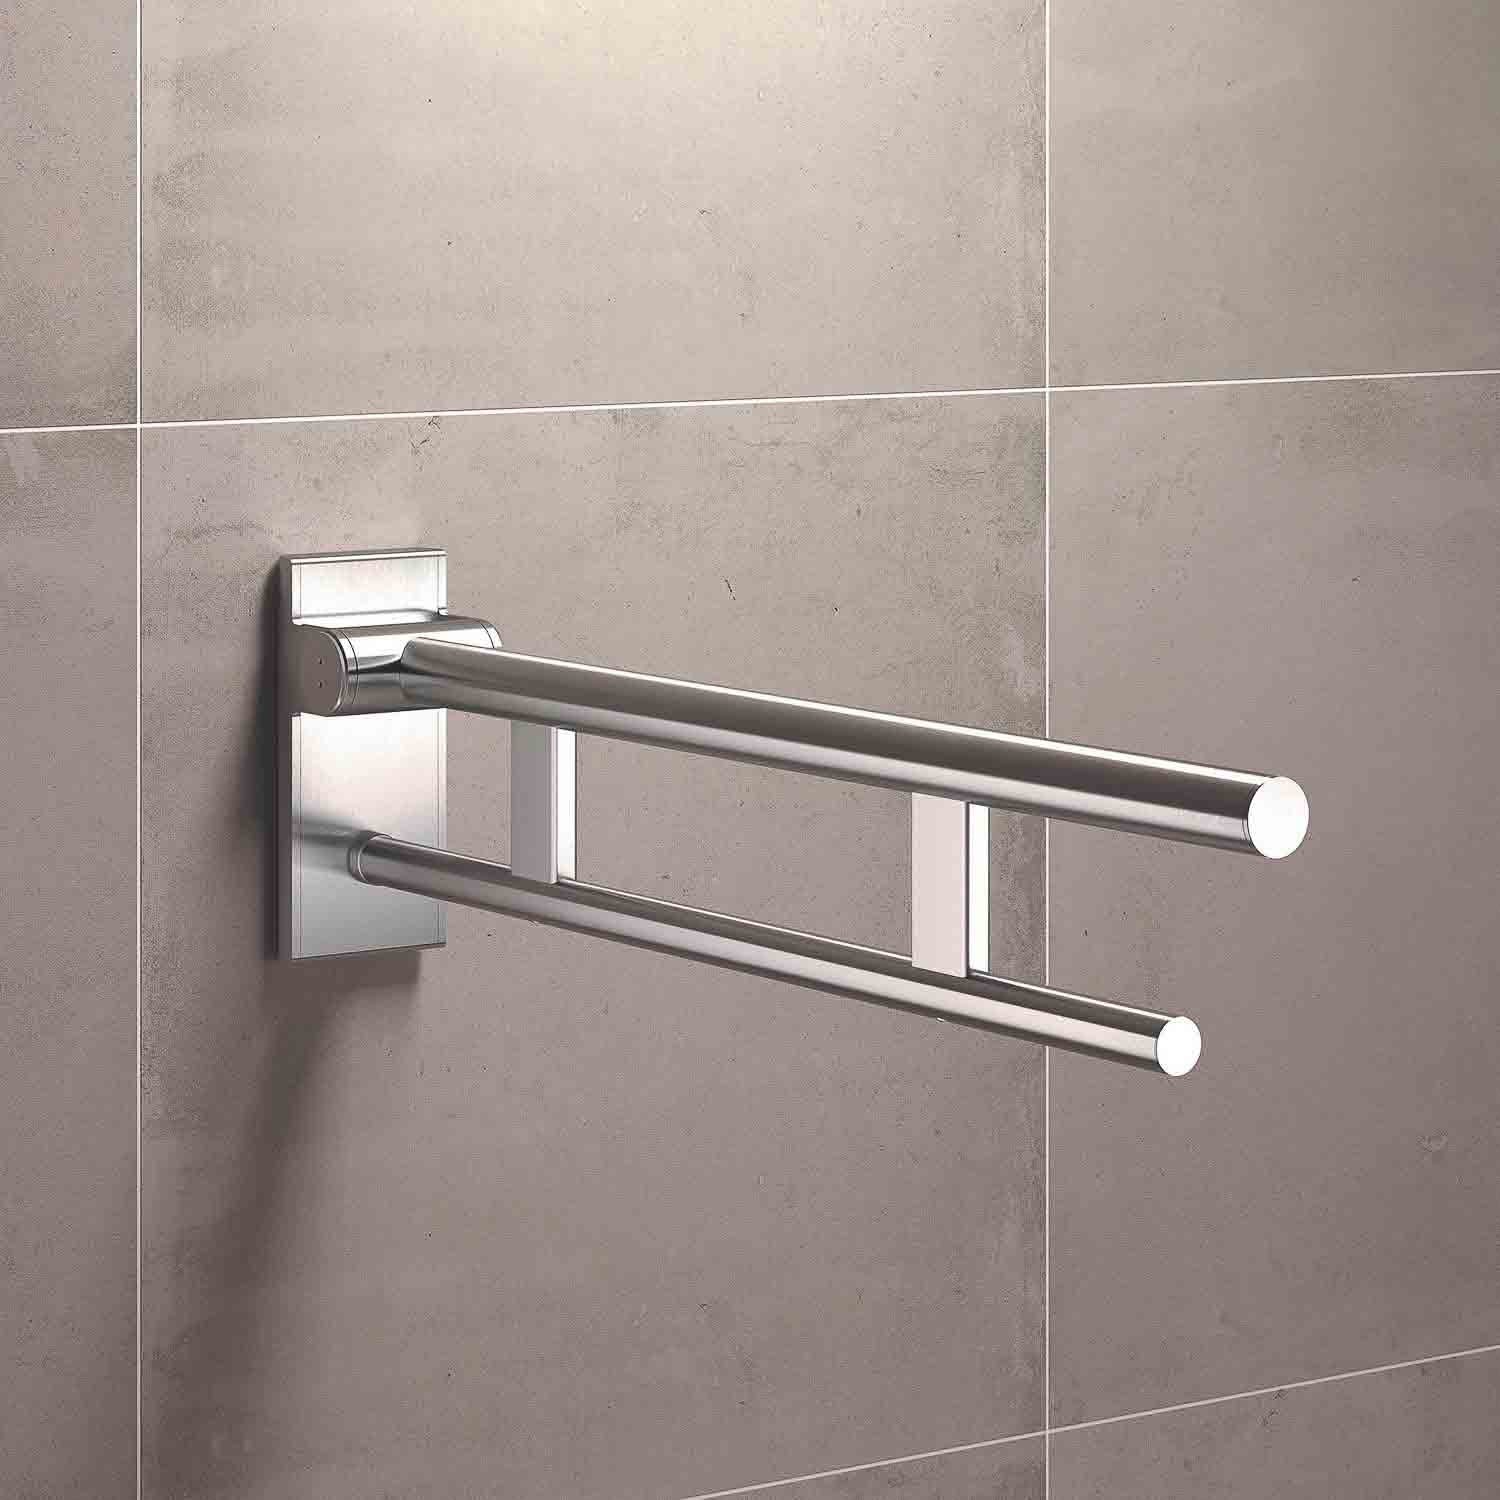 700mm Freestyle Removable Hinged Grab Rail with a satin steel finish lifestyle image